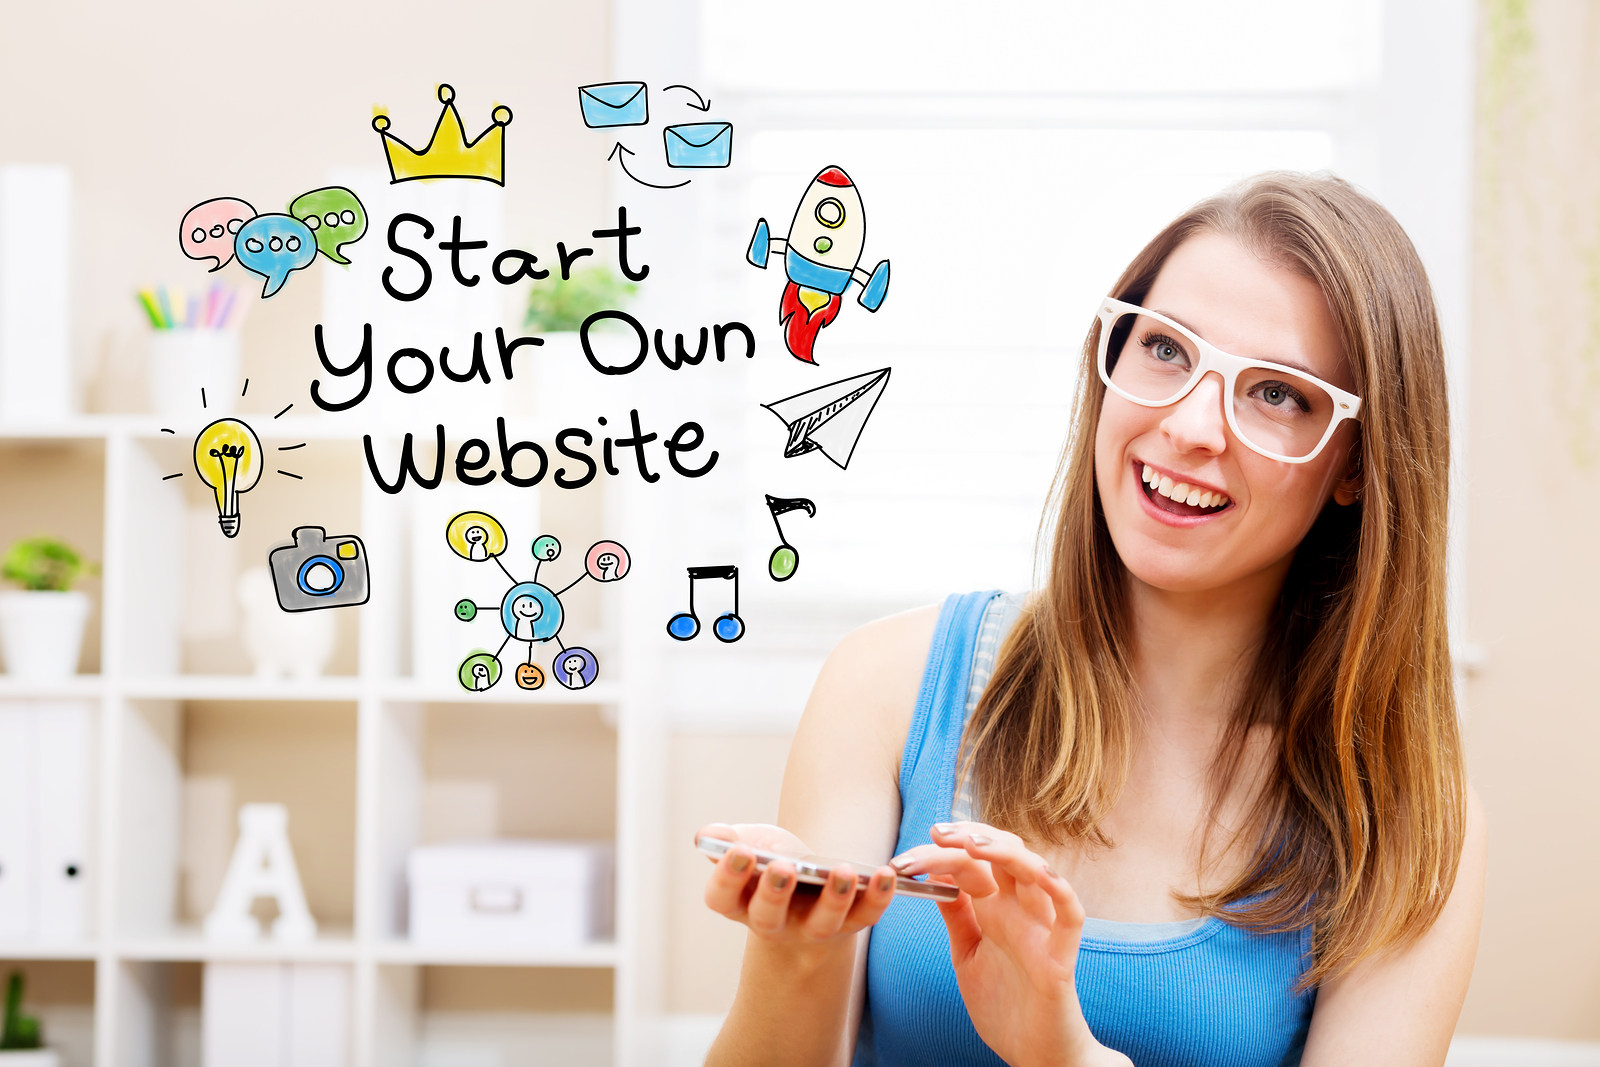 What If You Need a Website, But Don't Know about Web Design?